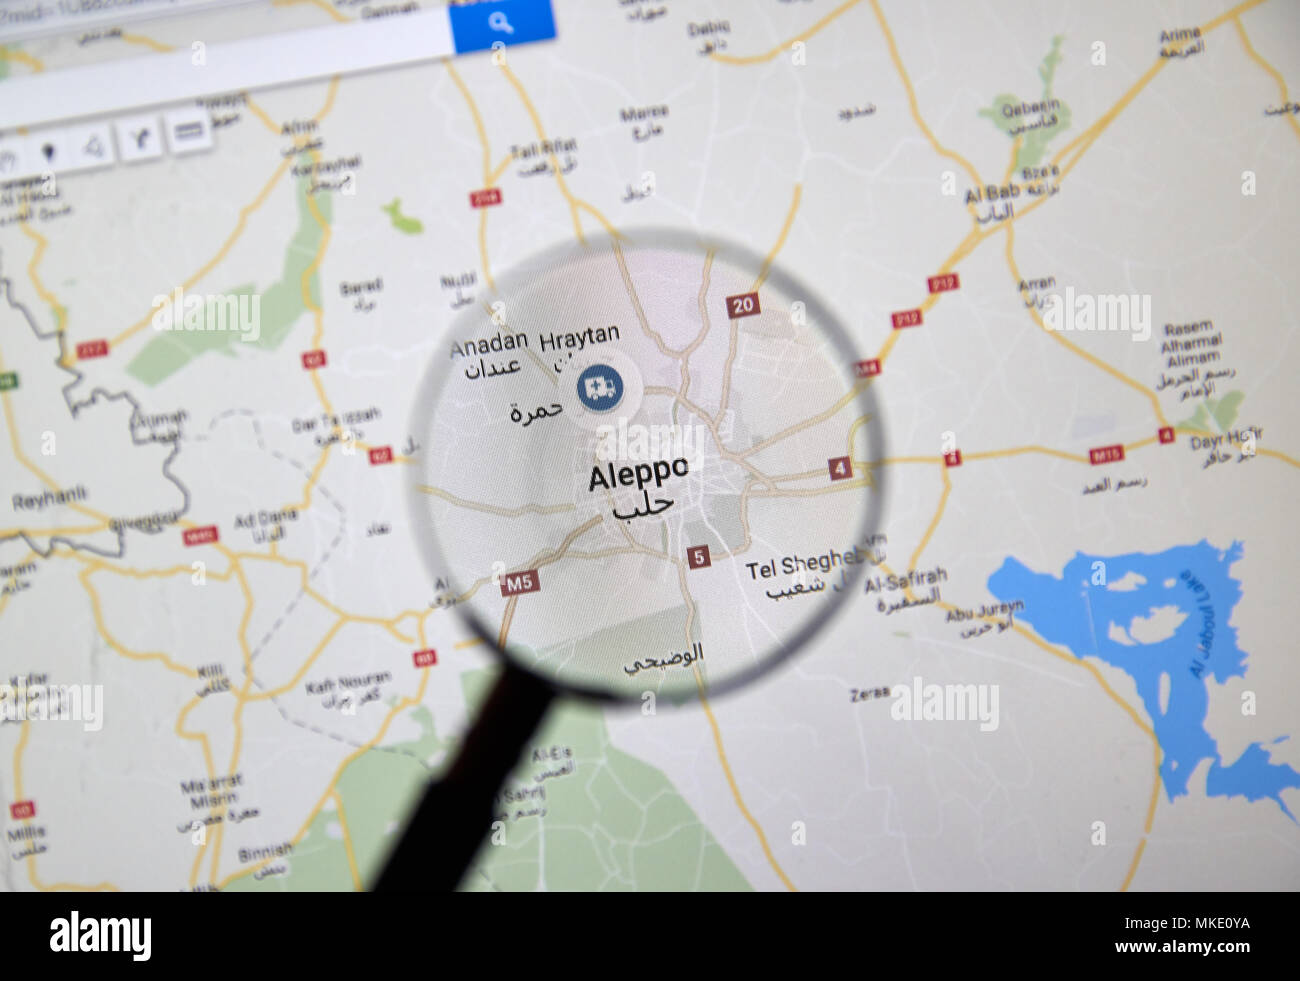 Map of aleppo stock photos map of aleppo stock images alamy montreal canada march 10 2018 aleppo syria on google maps under gumiabroncs Gallery